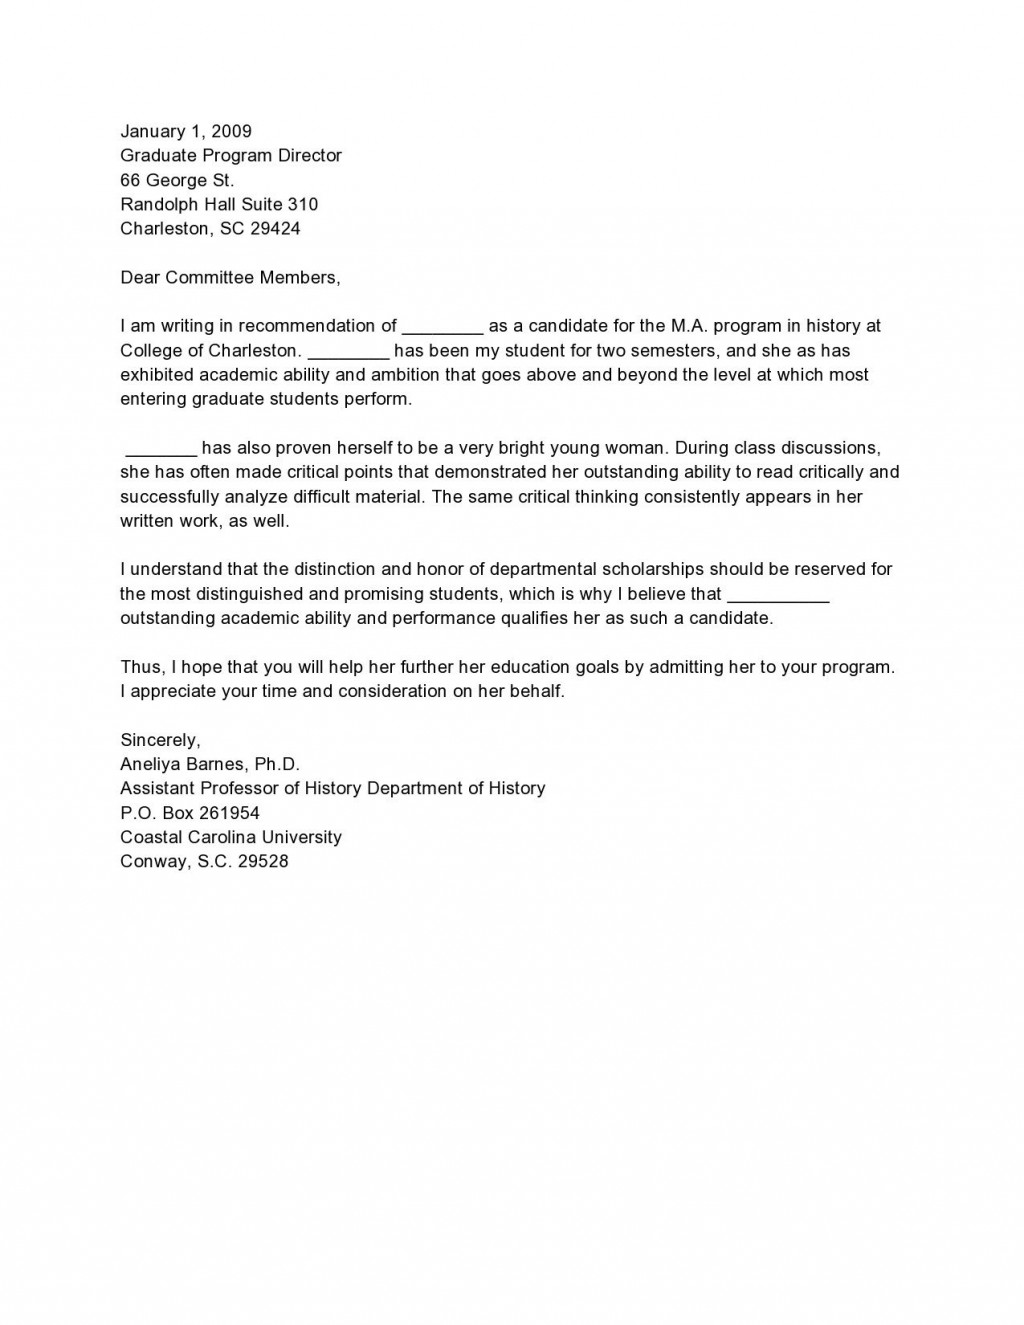 005 Staggering Letter Of Recommendation Template For College Student Highest Quality  Sample From ProfessorLarge